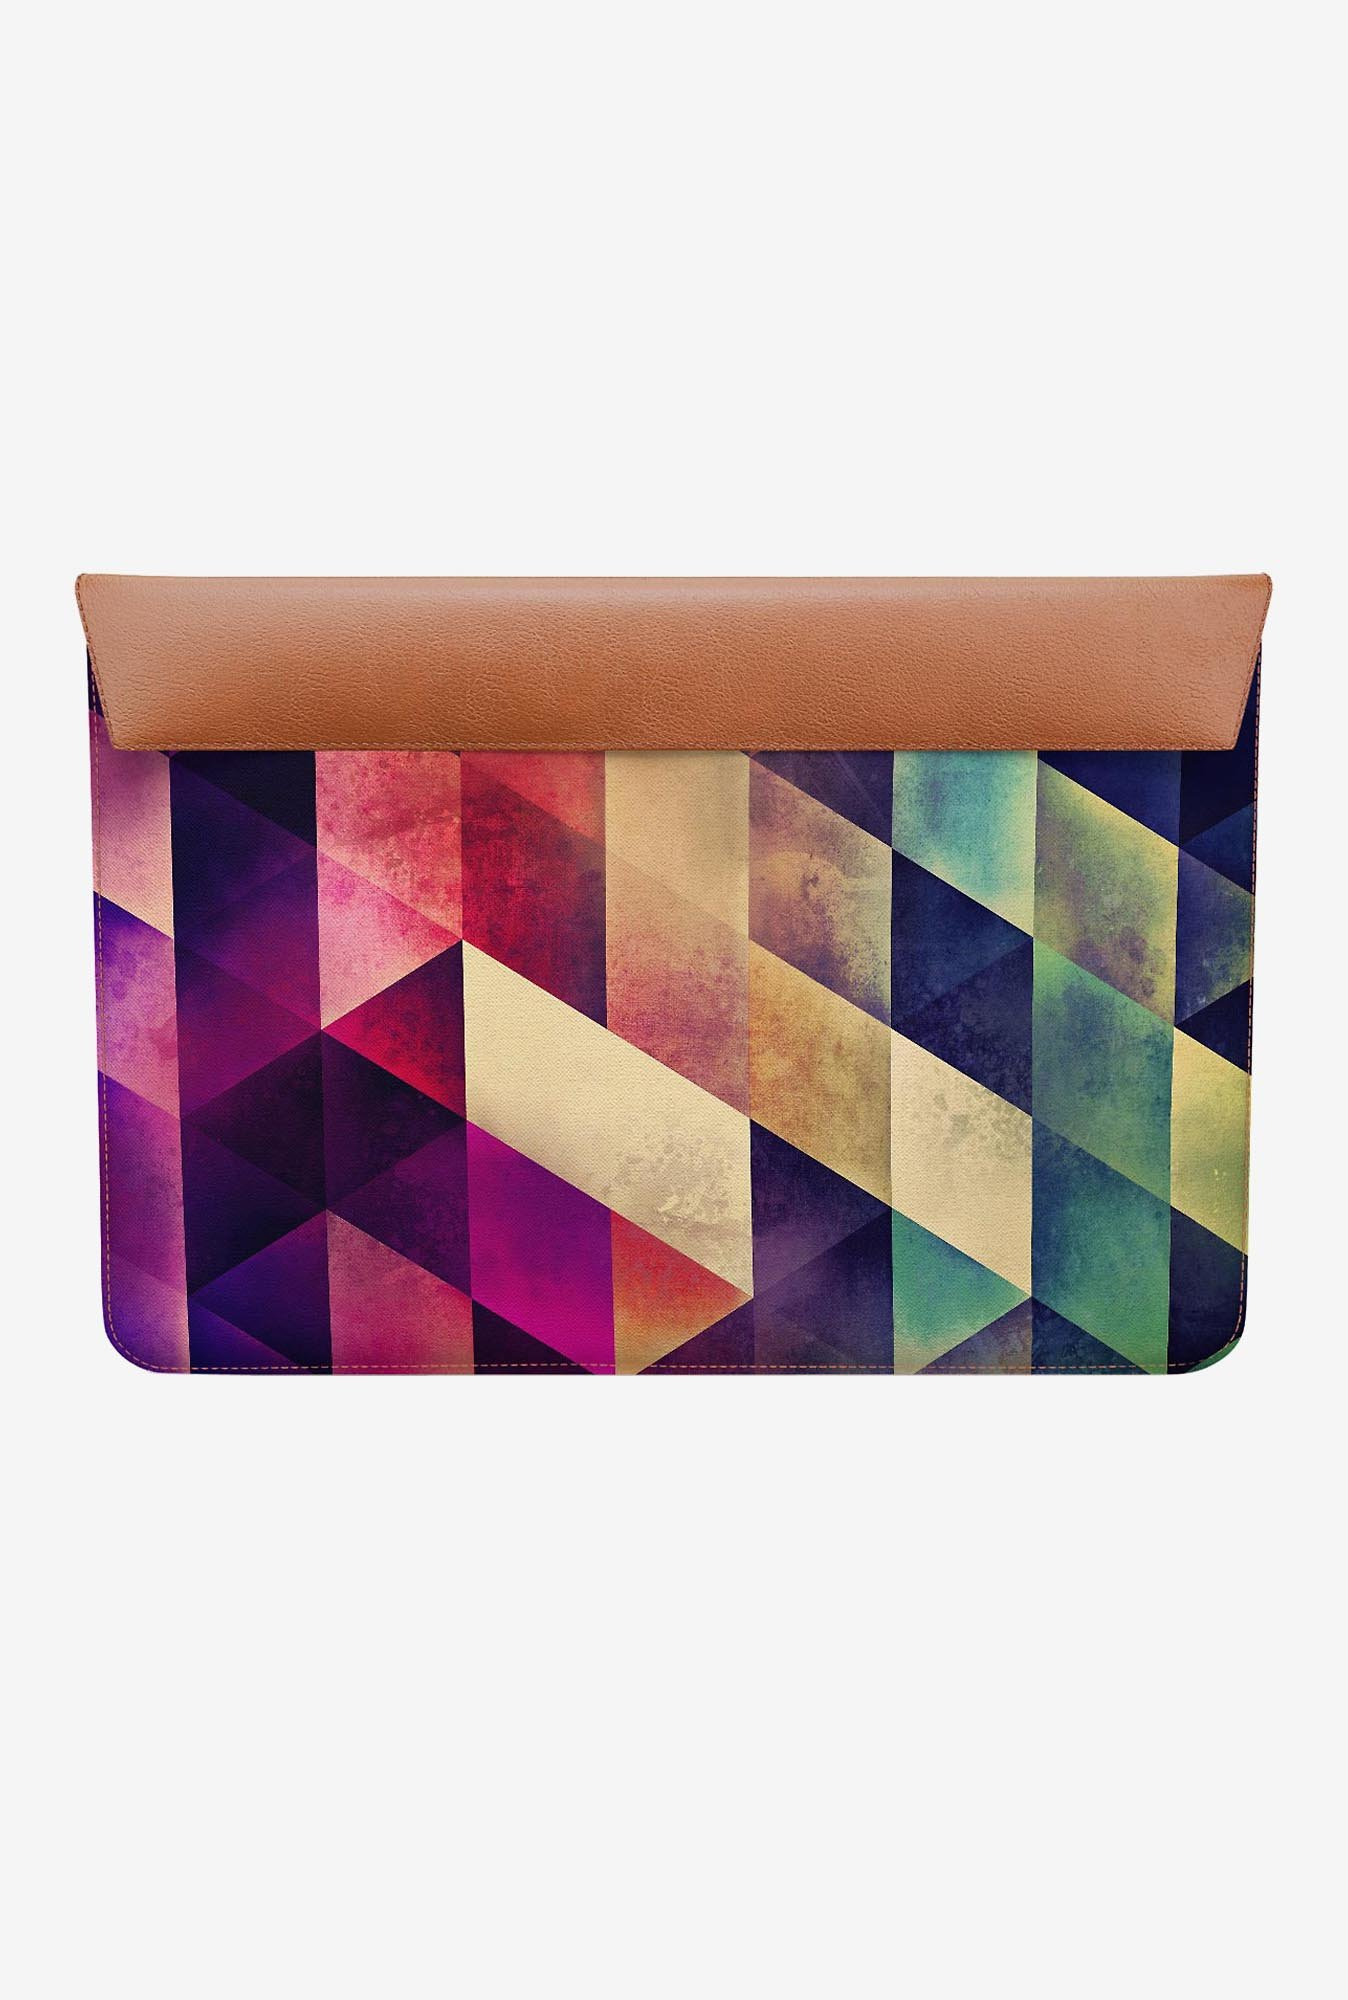 DailyObjects yvyr yt MacBook Air 11 Envelope Sleeve